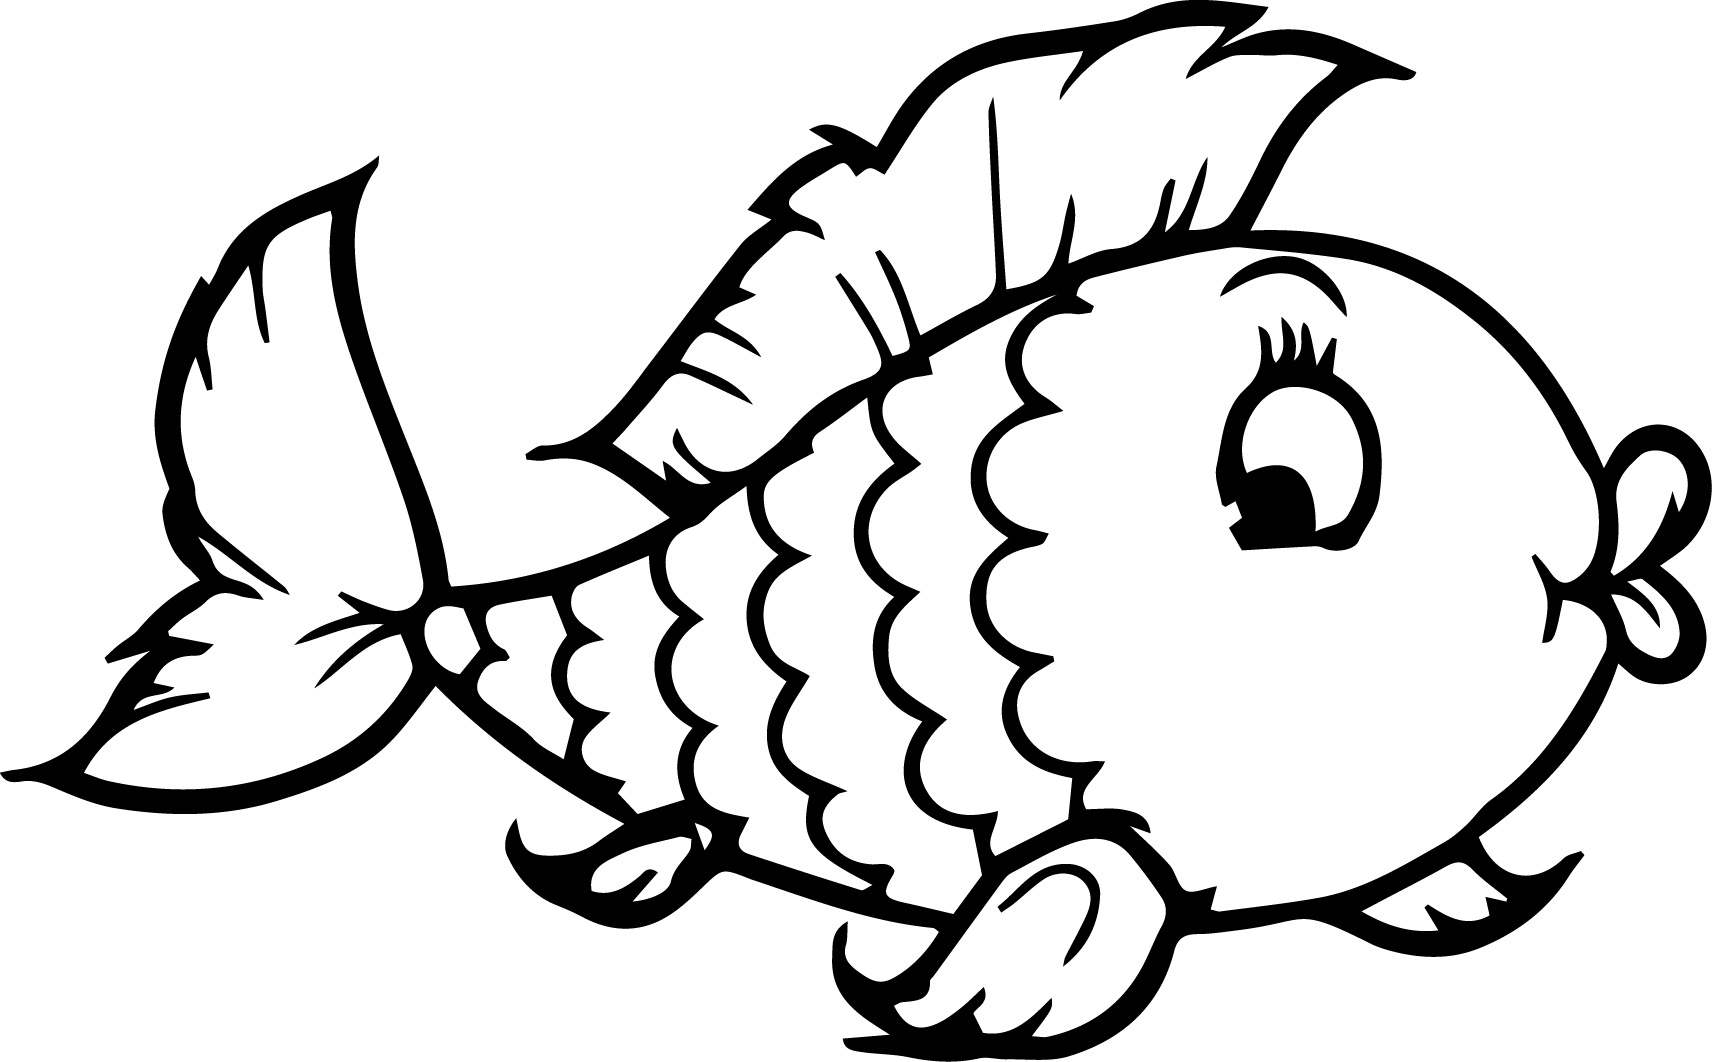 Uncategorized Cartoon Fish Coloring Pages cartoon fish girl coloring page sheet wecoloringpage sheet